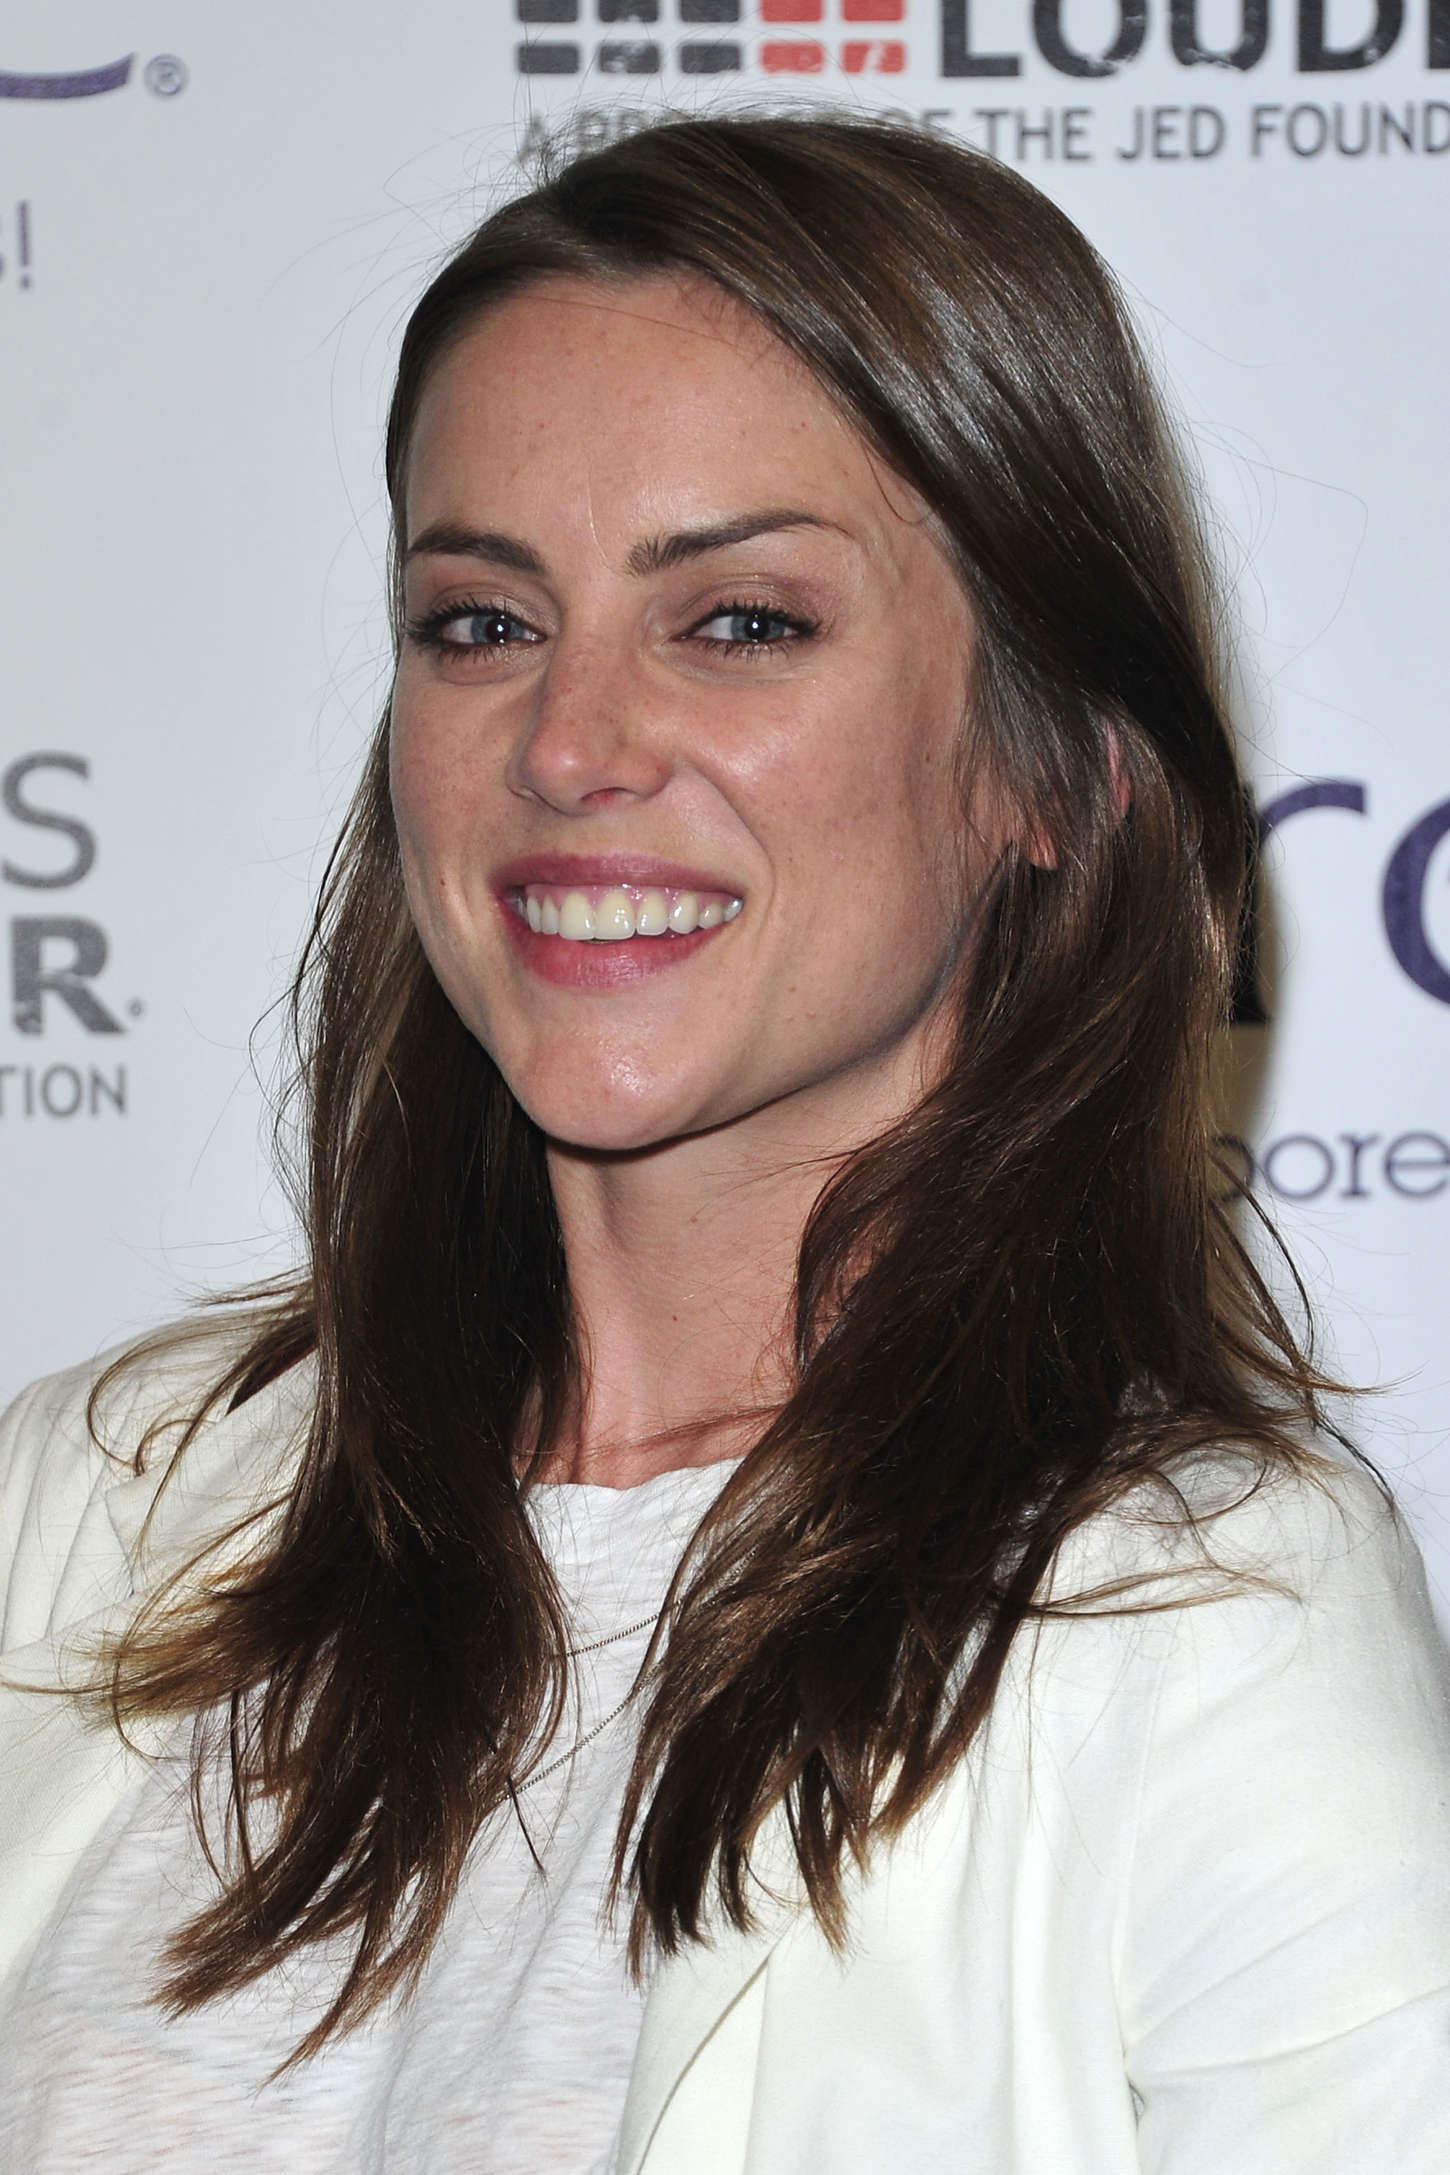 Jessica Stroup Biore Skincare Love Is Louder Project Event in Los Angeles